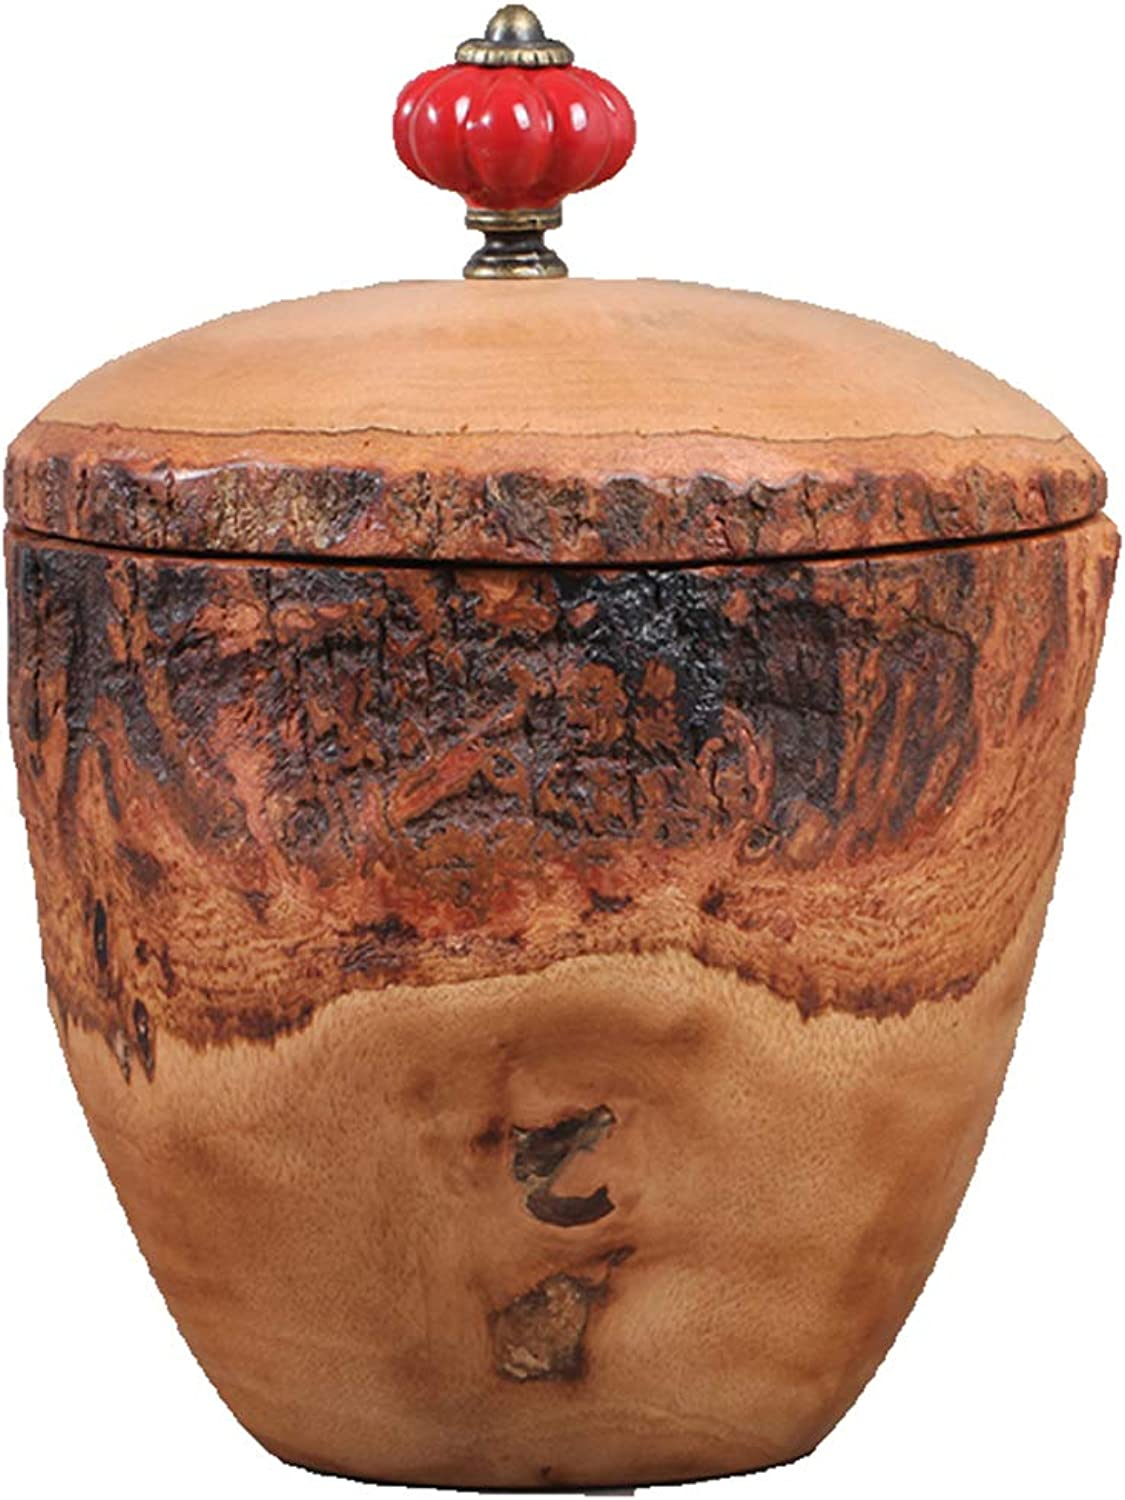 ANHPIUrns Funeral Mini Cremation Urn Human Ashes Adult Fits